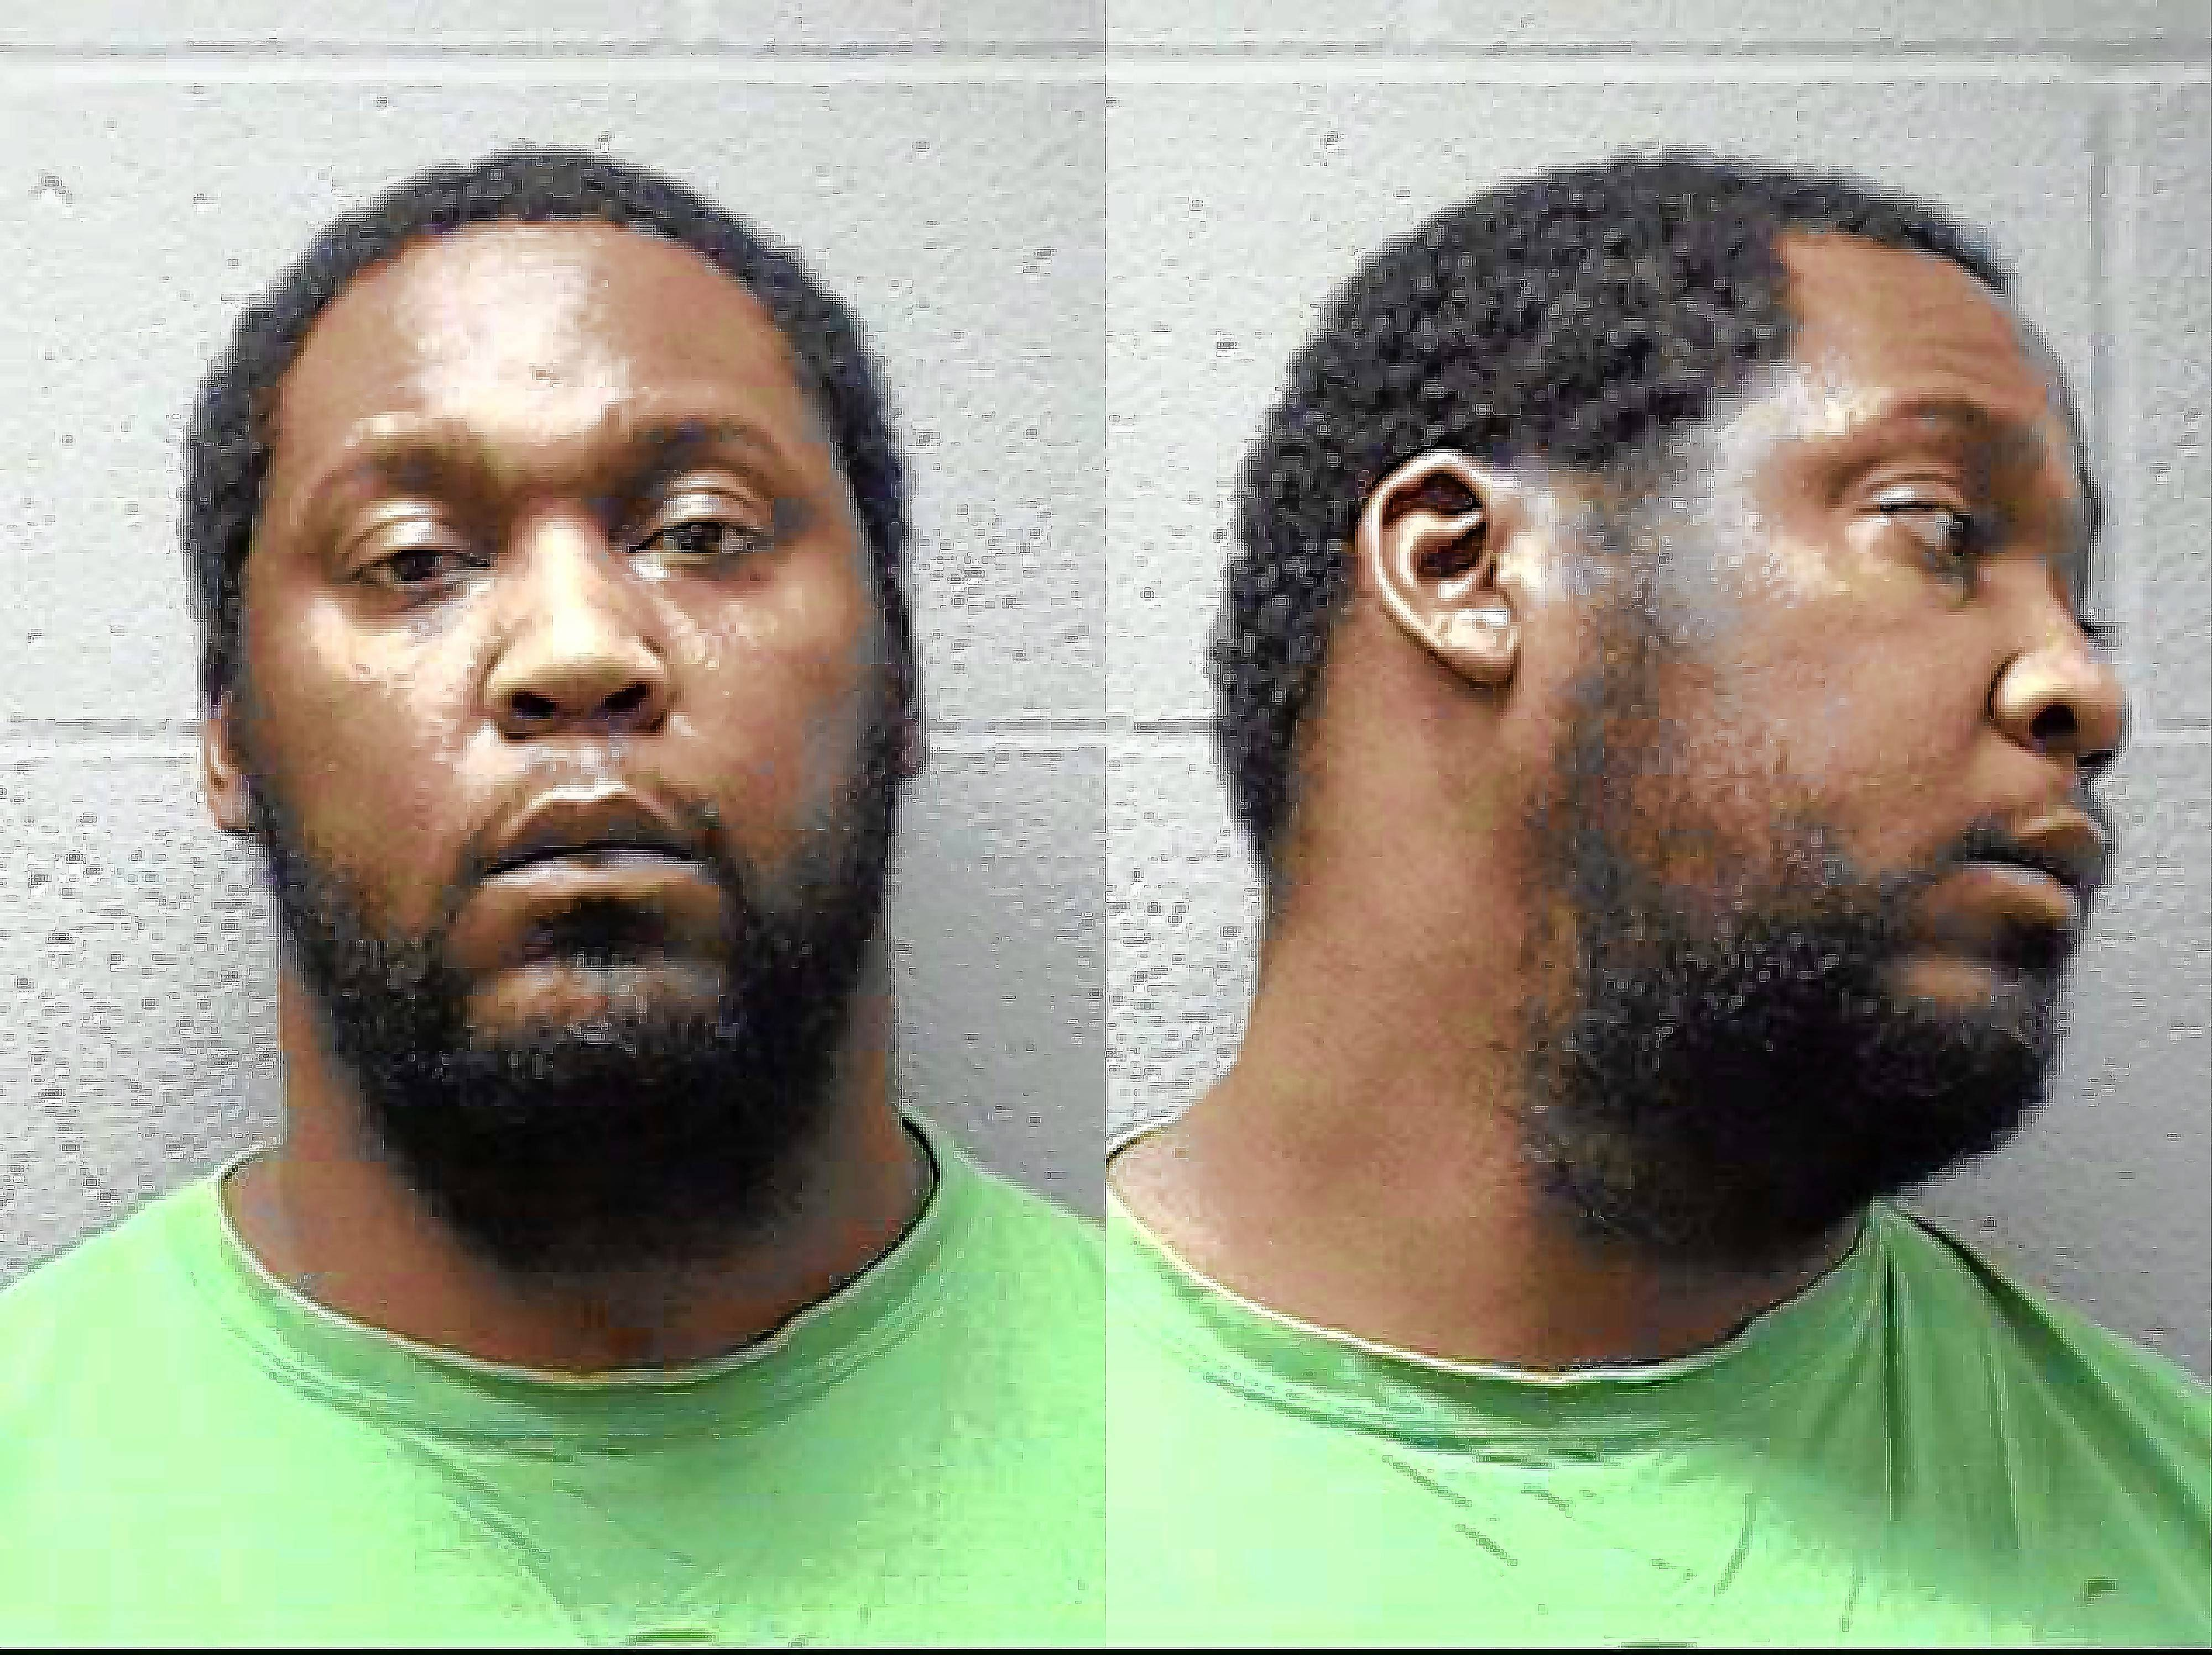 Elvin L. Adams faces up to three years in prison on a video recording felony charge.